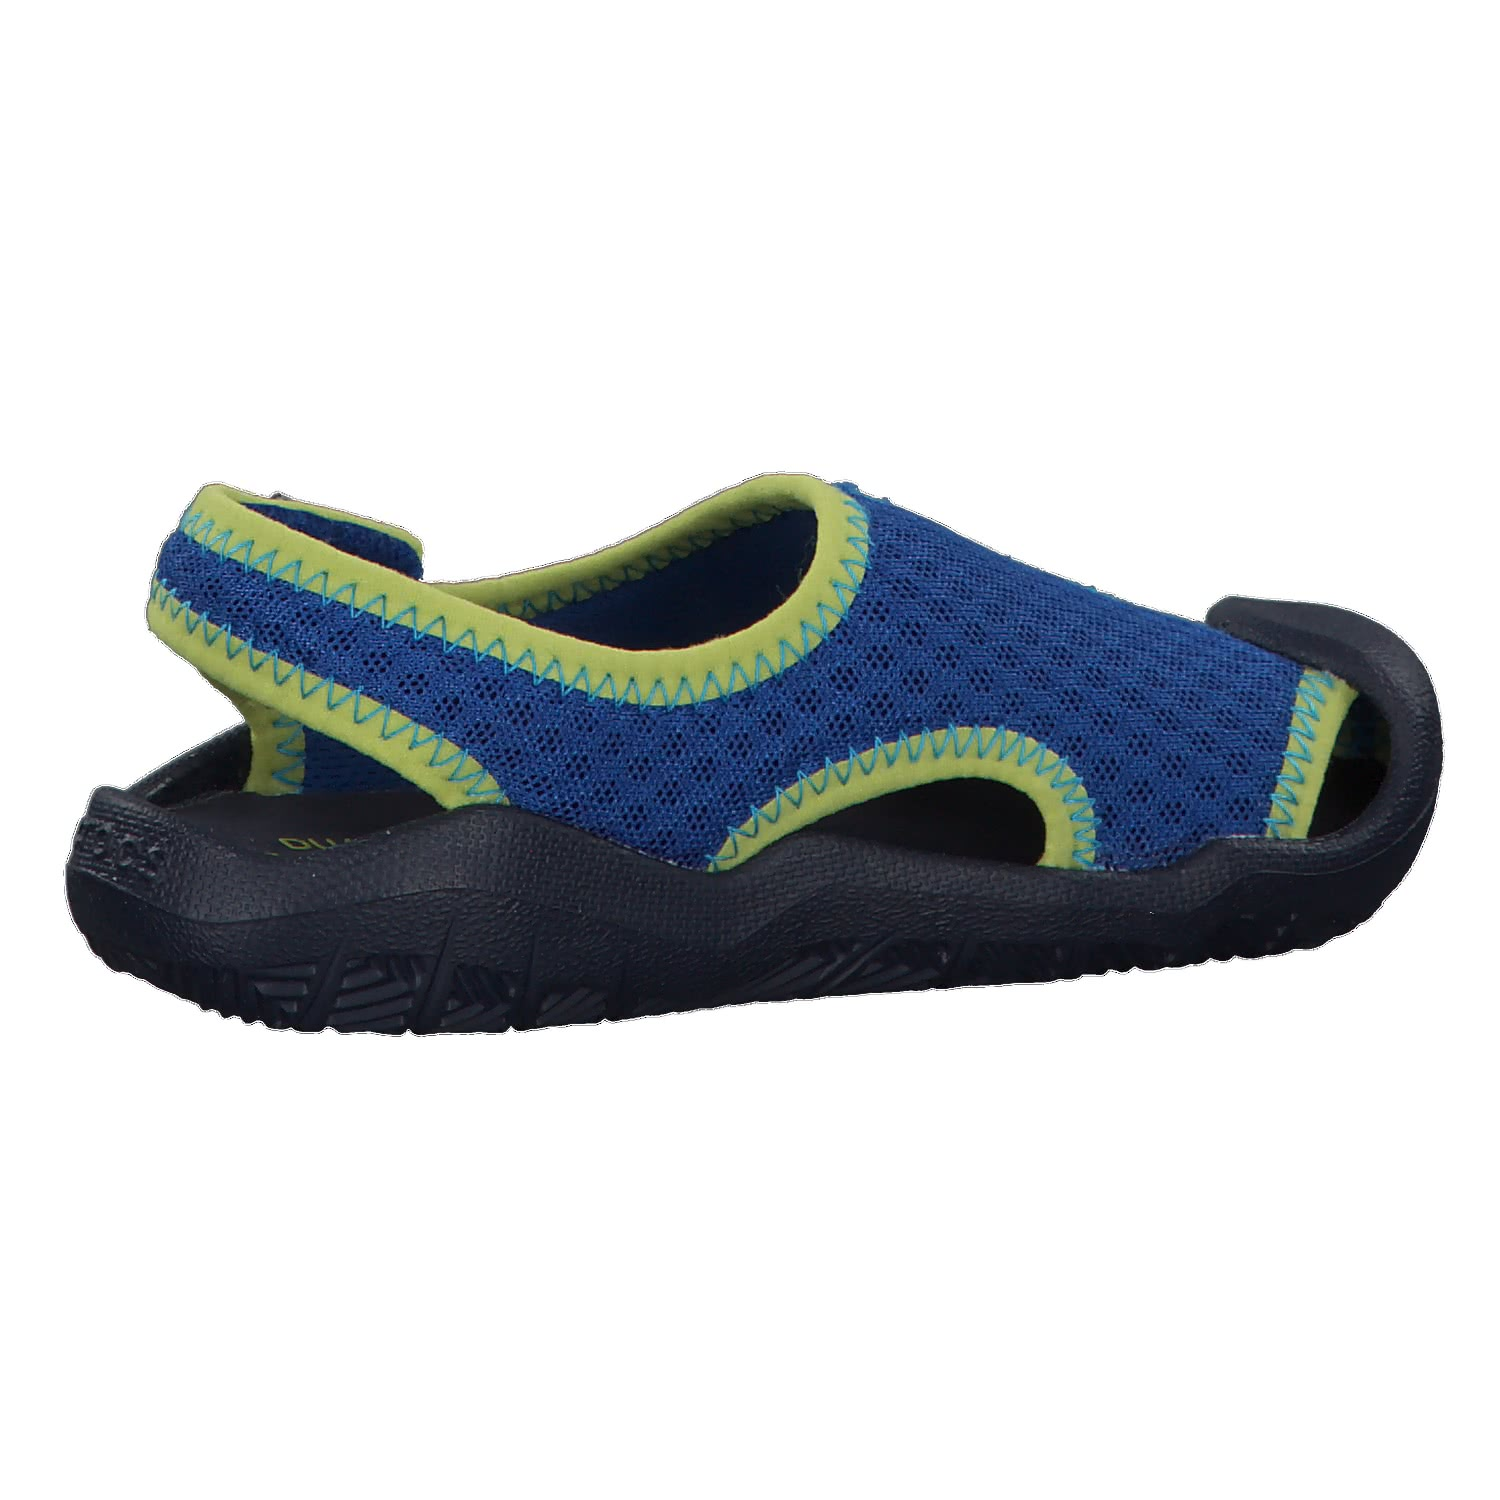 Sandalen CROCS - Swiftwater Sandal K 204024 Blue Jean/Navy